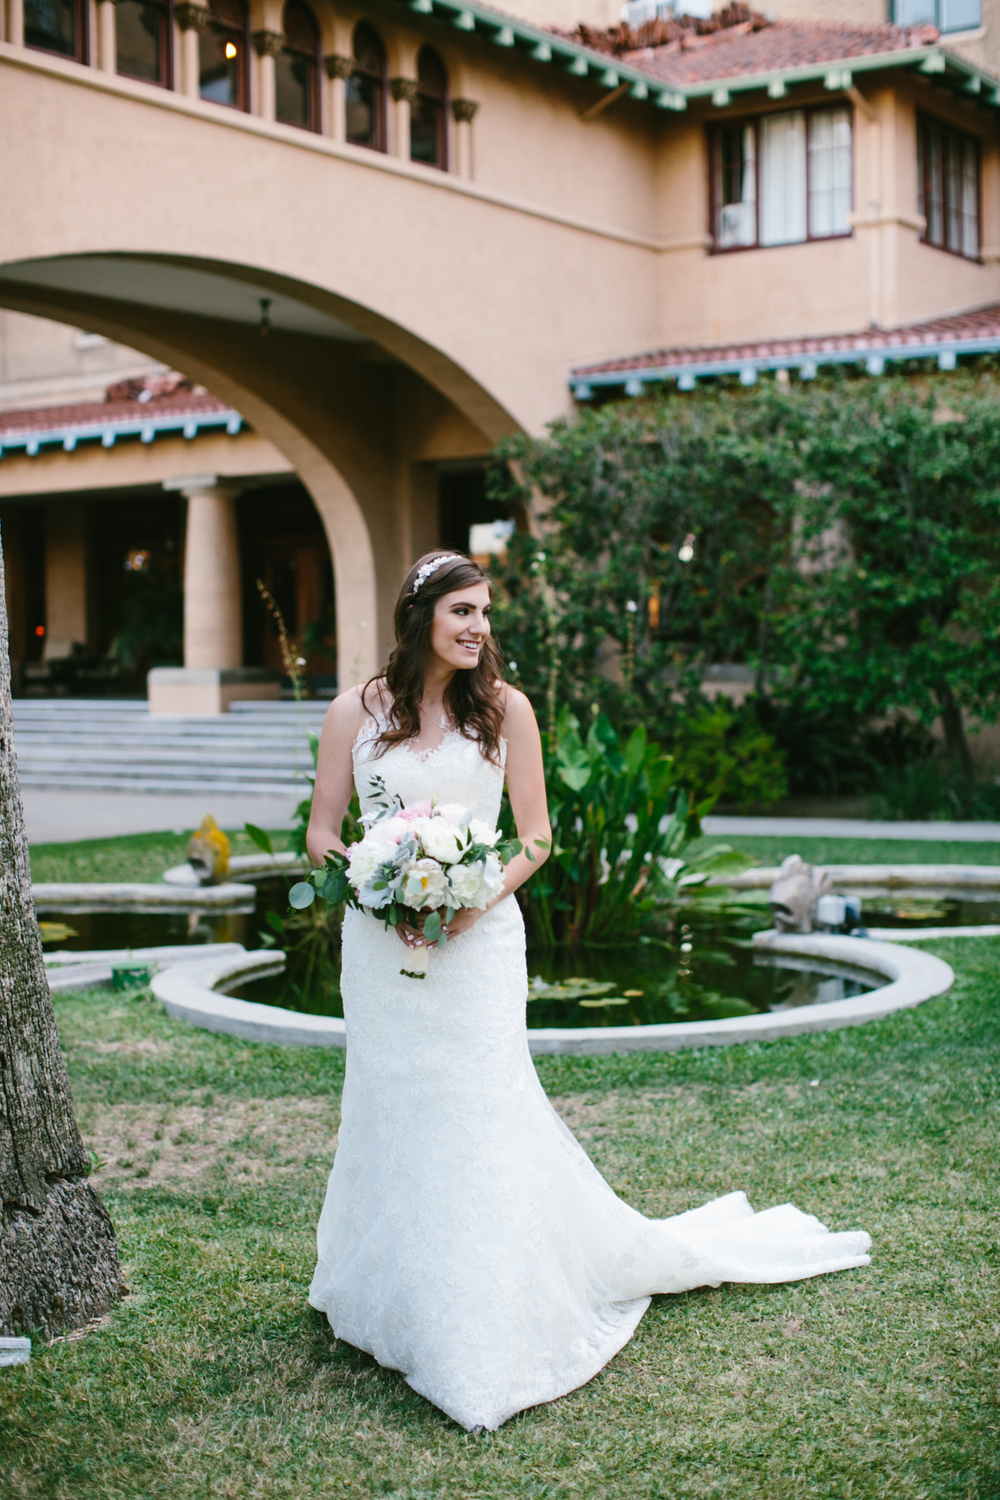 Castle Green Pasadena Wedding Amanda and Christian-88.jpg